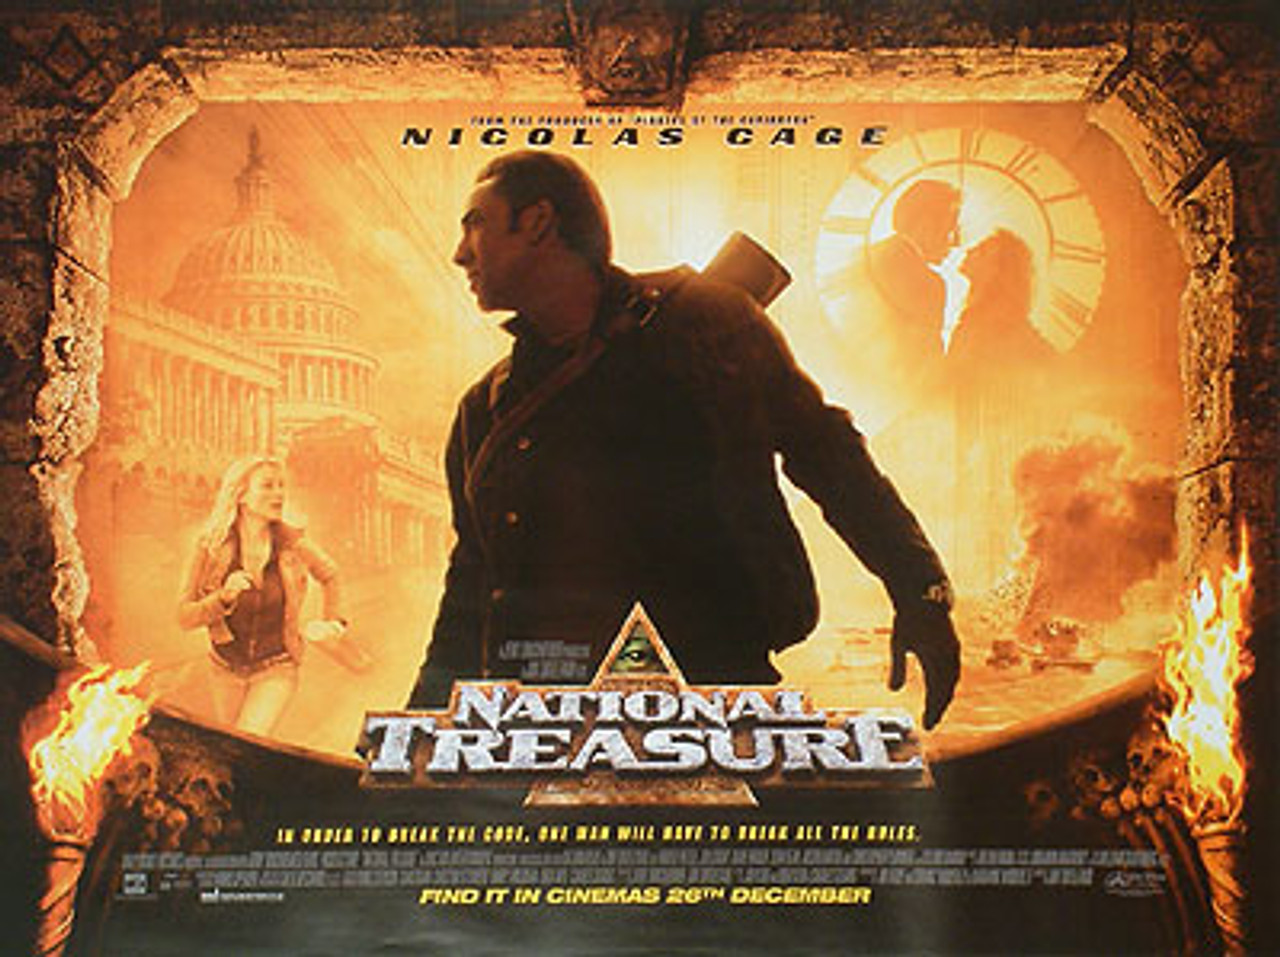 NATIONAL TREASURE (Double Sided) POSTER buy movie posters at ...